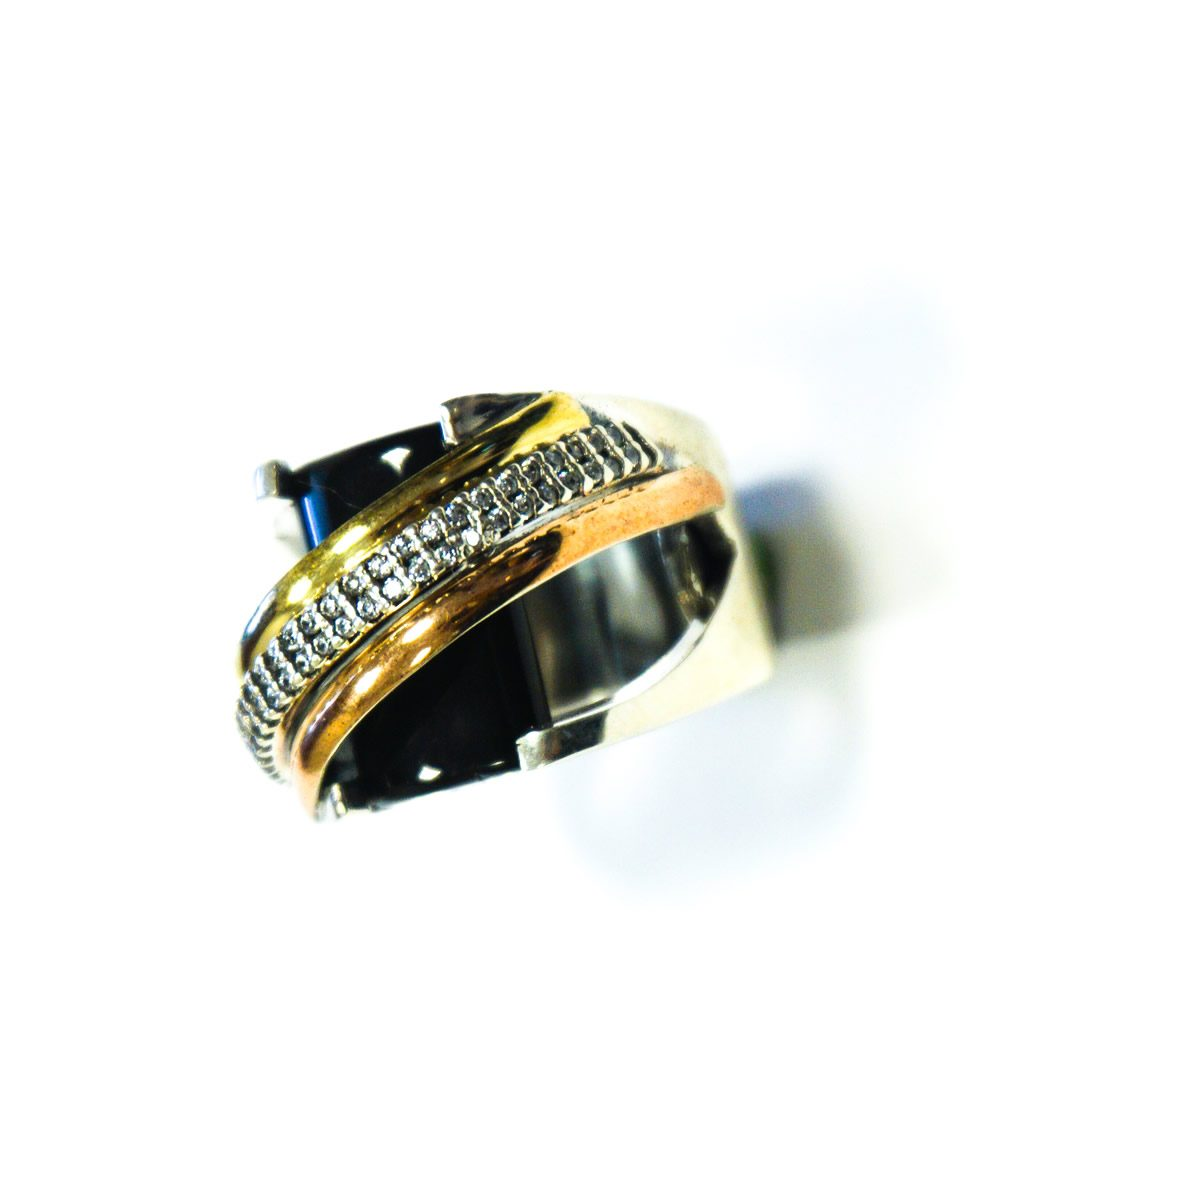 Elegant Sterling Silver 9.25 Ring with Goldtone Plating